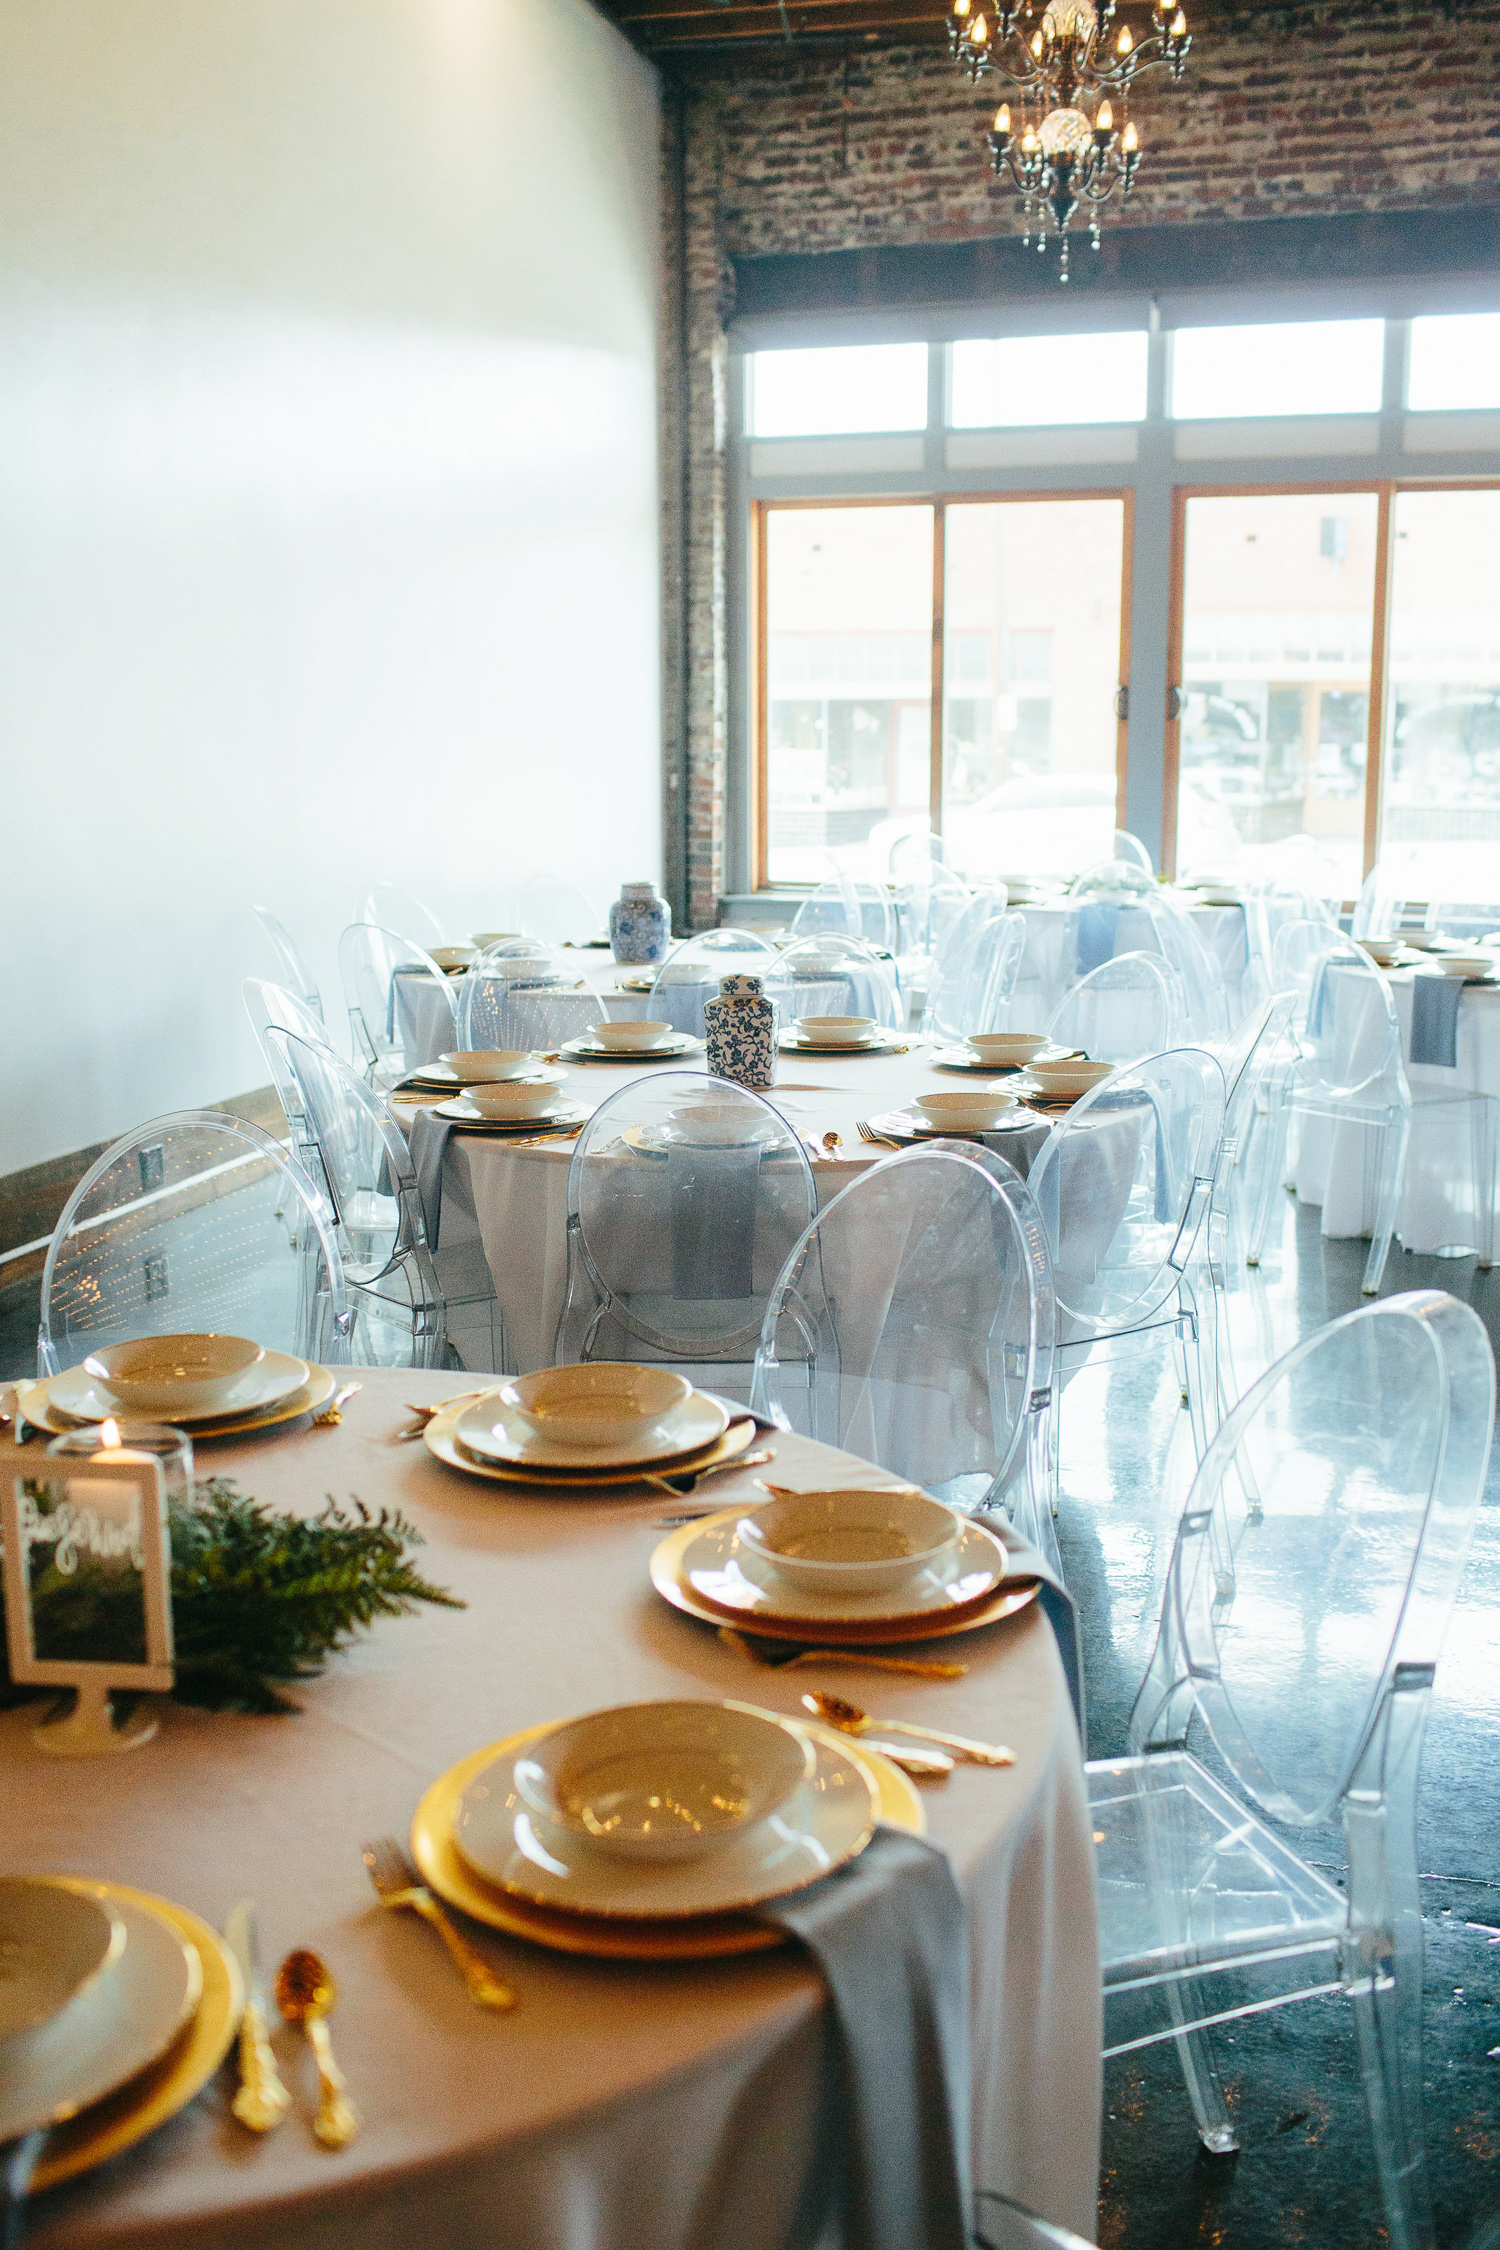 Downtown Knoxville Wedding Reception Venue // Botanical Wedding // Gold Chargers & Lucite Chairs